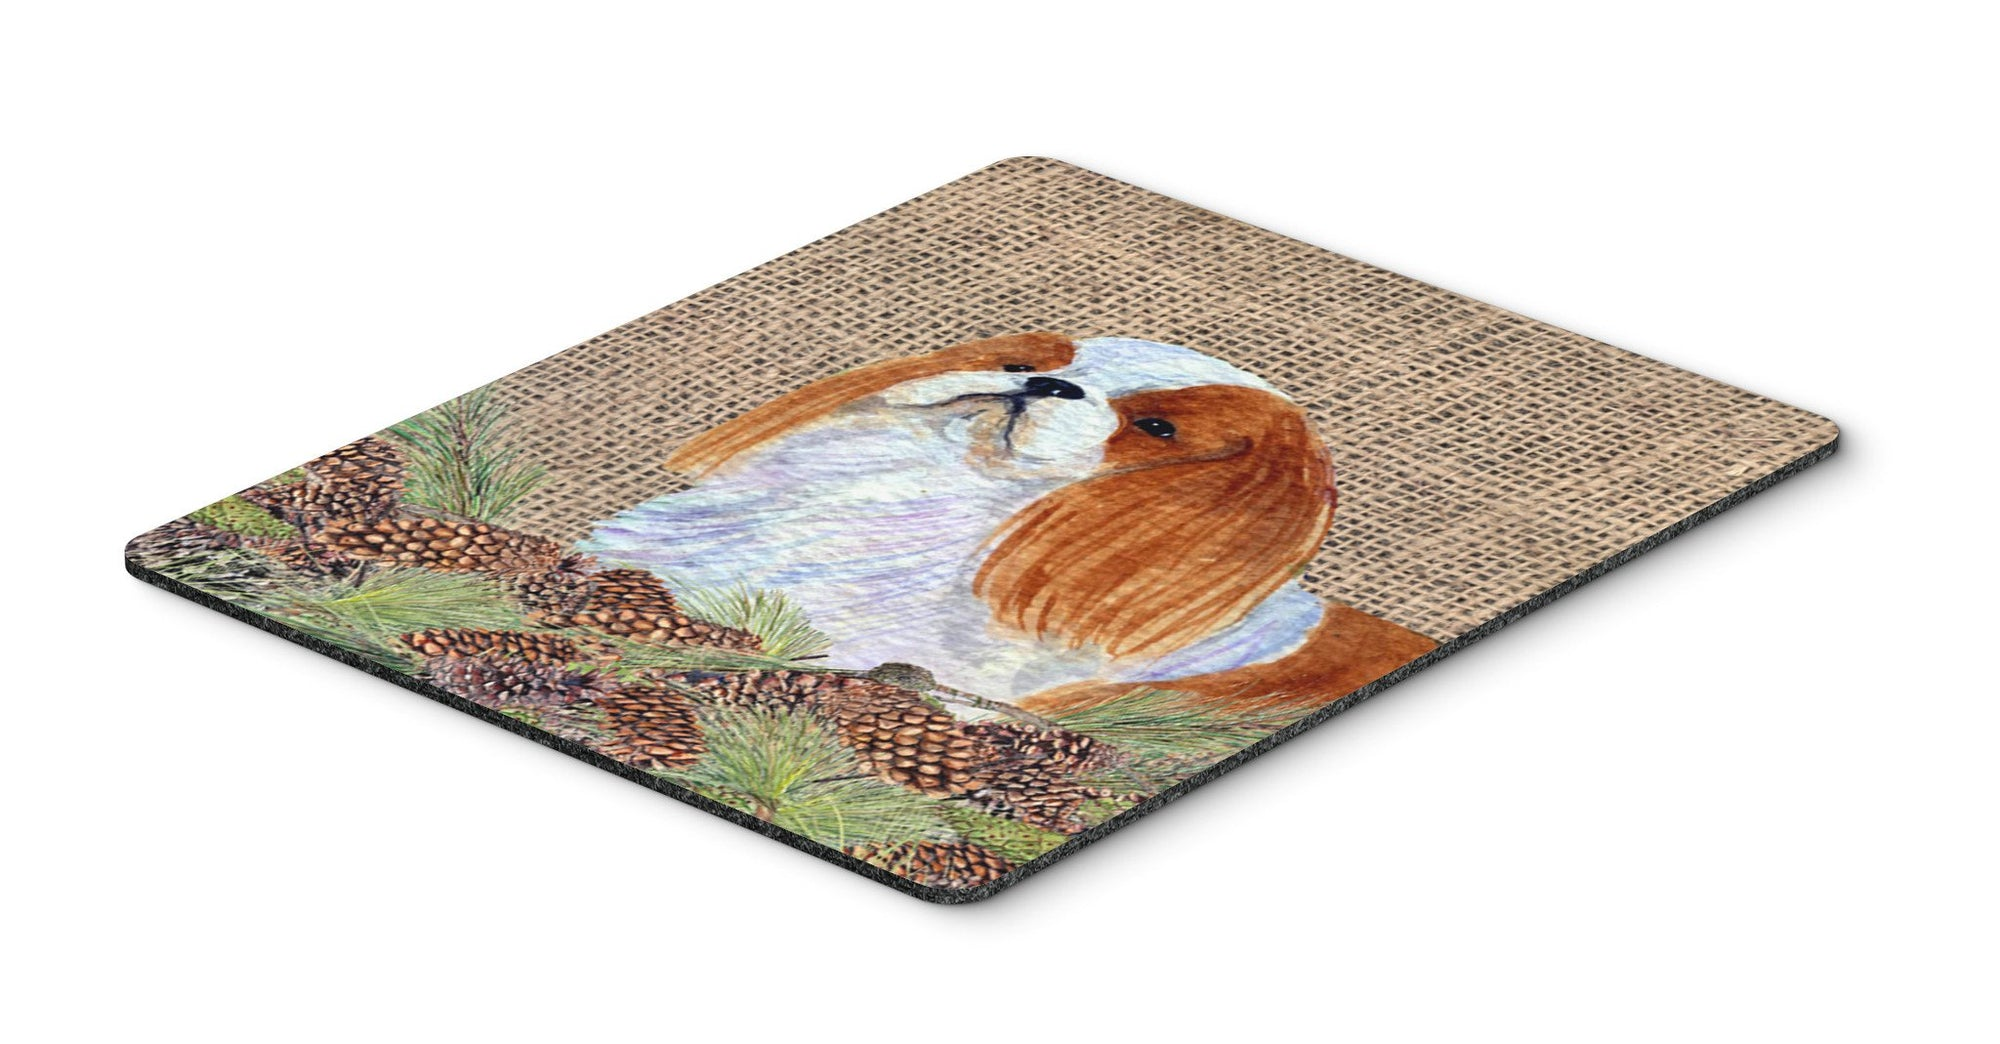 English Toy Spaniel Mouse Pad, Hot Pad or Trivet by Caroline's Treasures